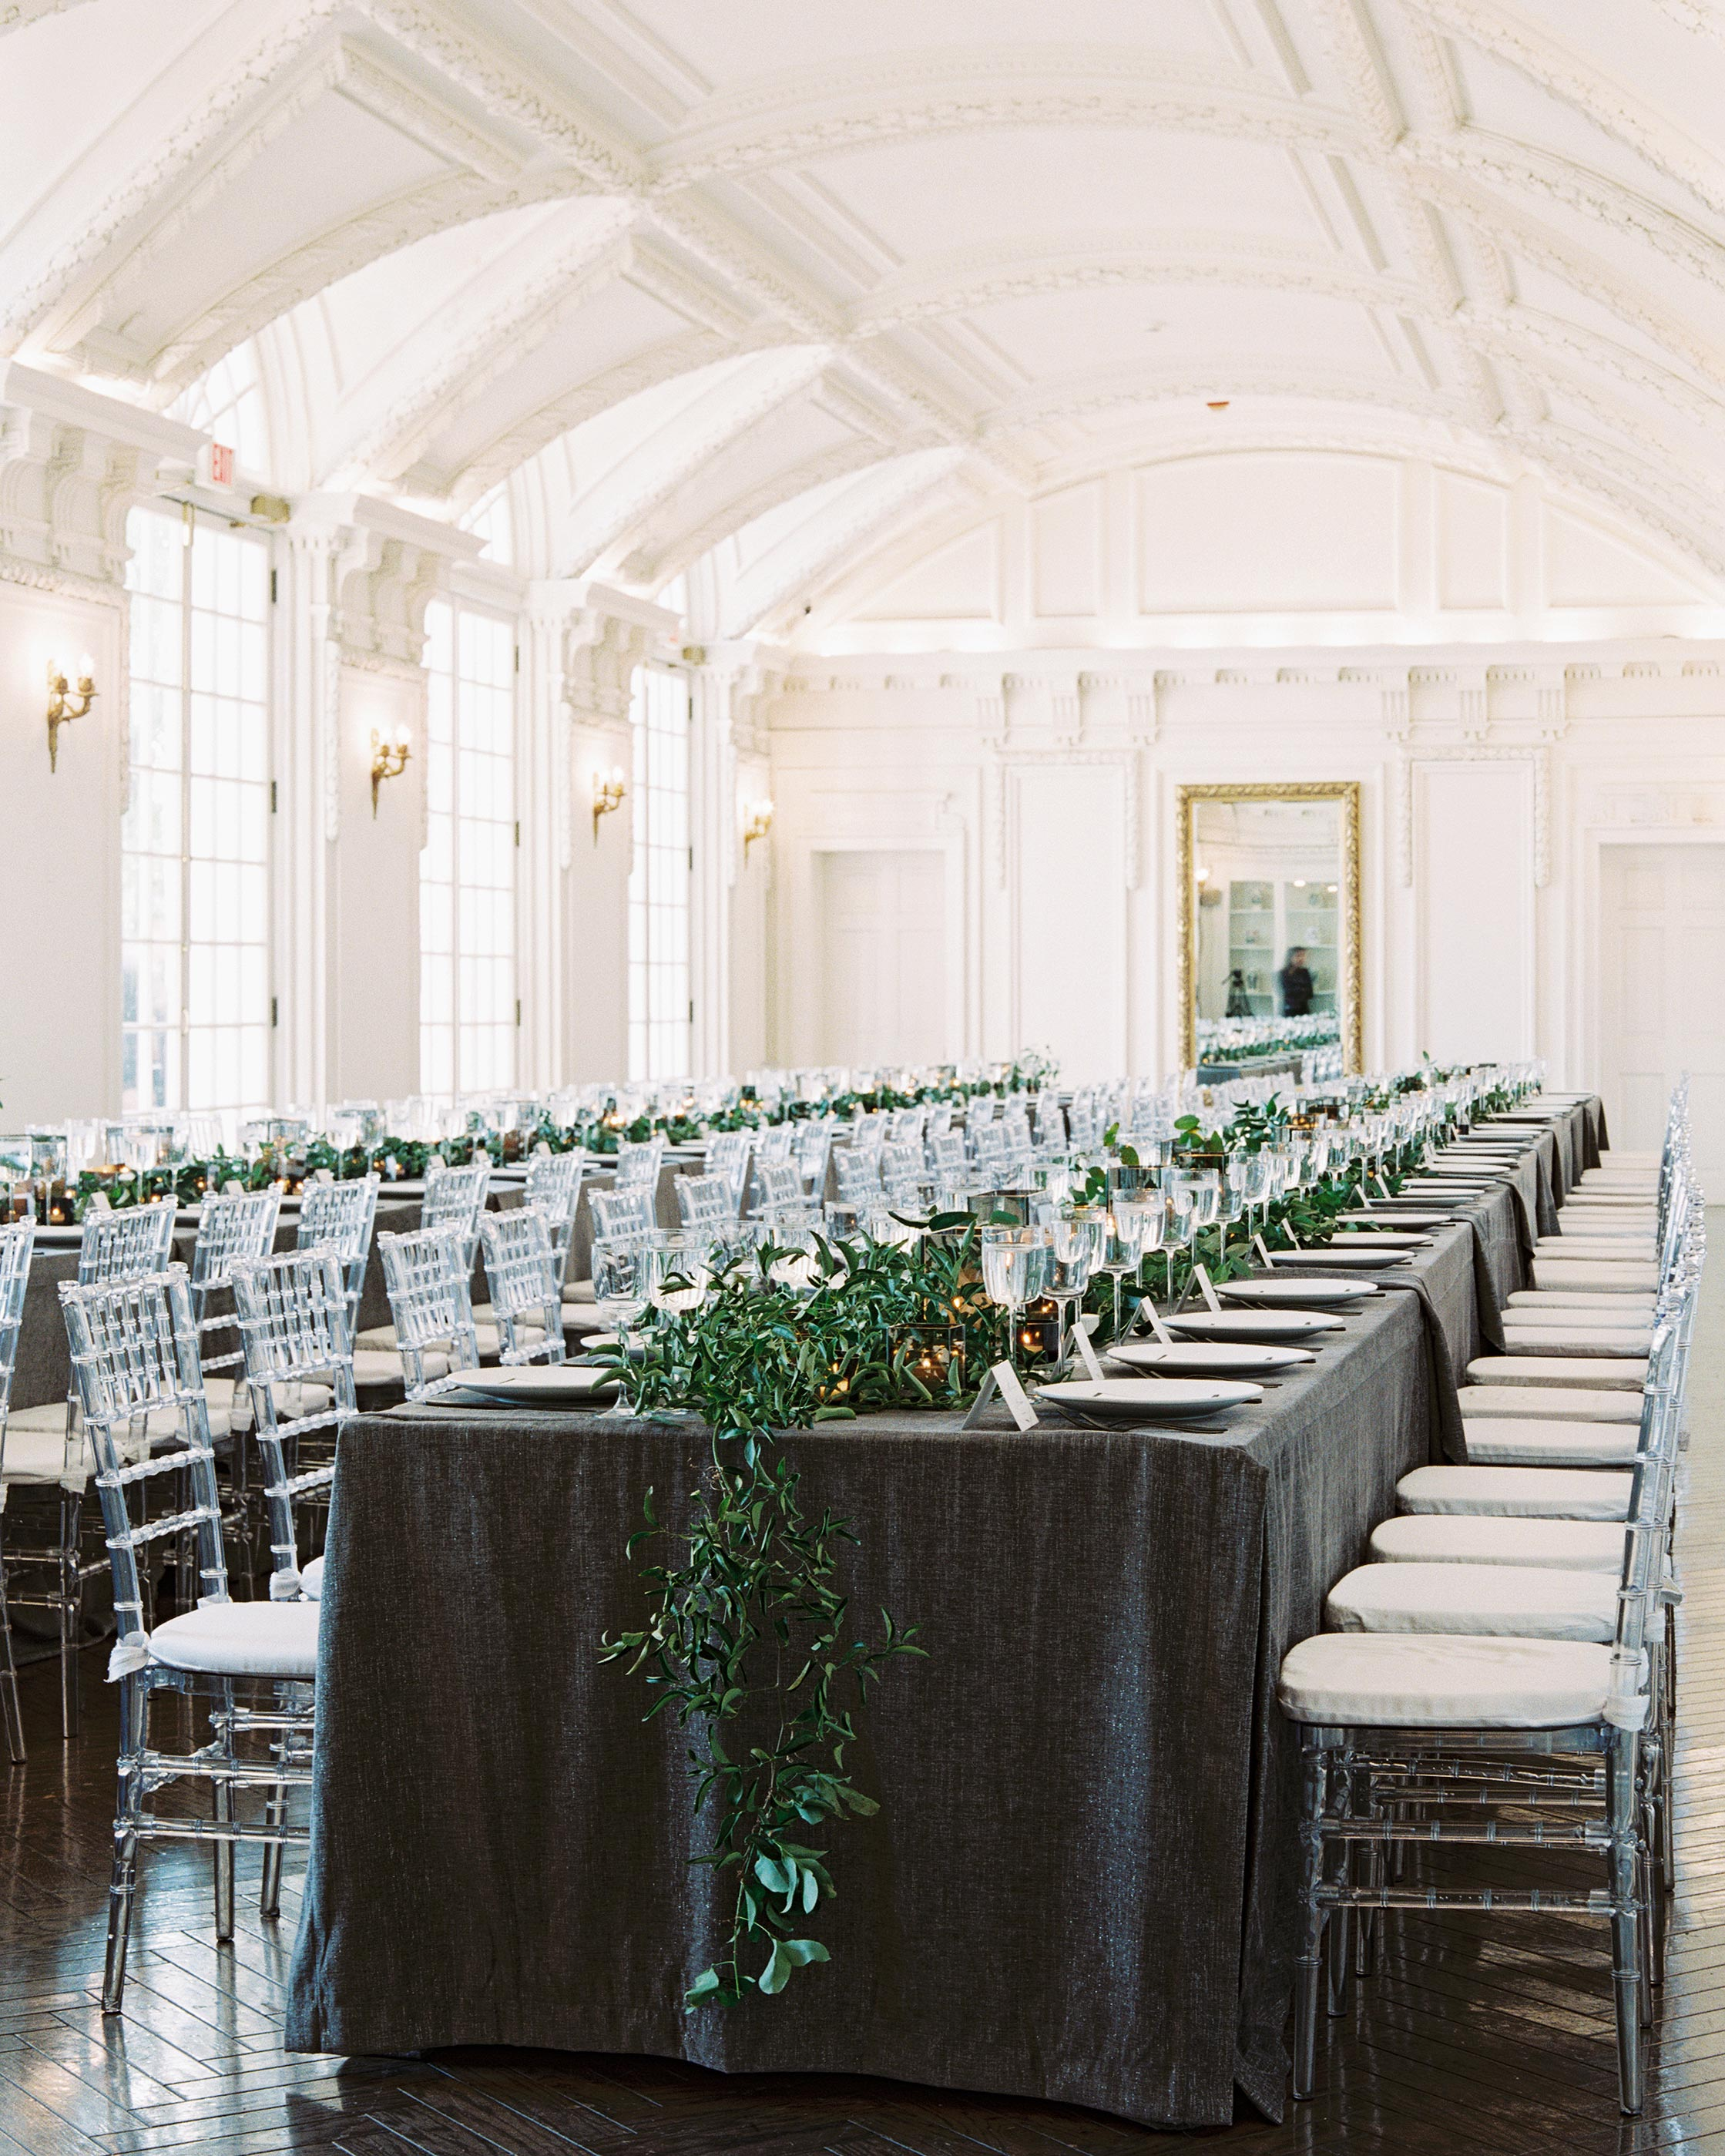 Wedding Planners Share Their Favorite Ways to Modernize a Historic Wedding Venue